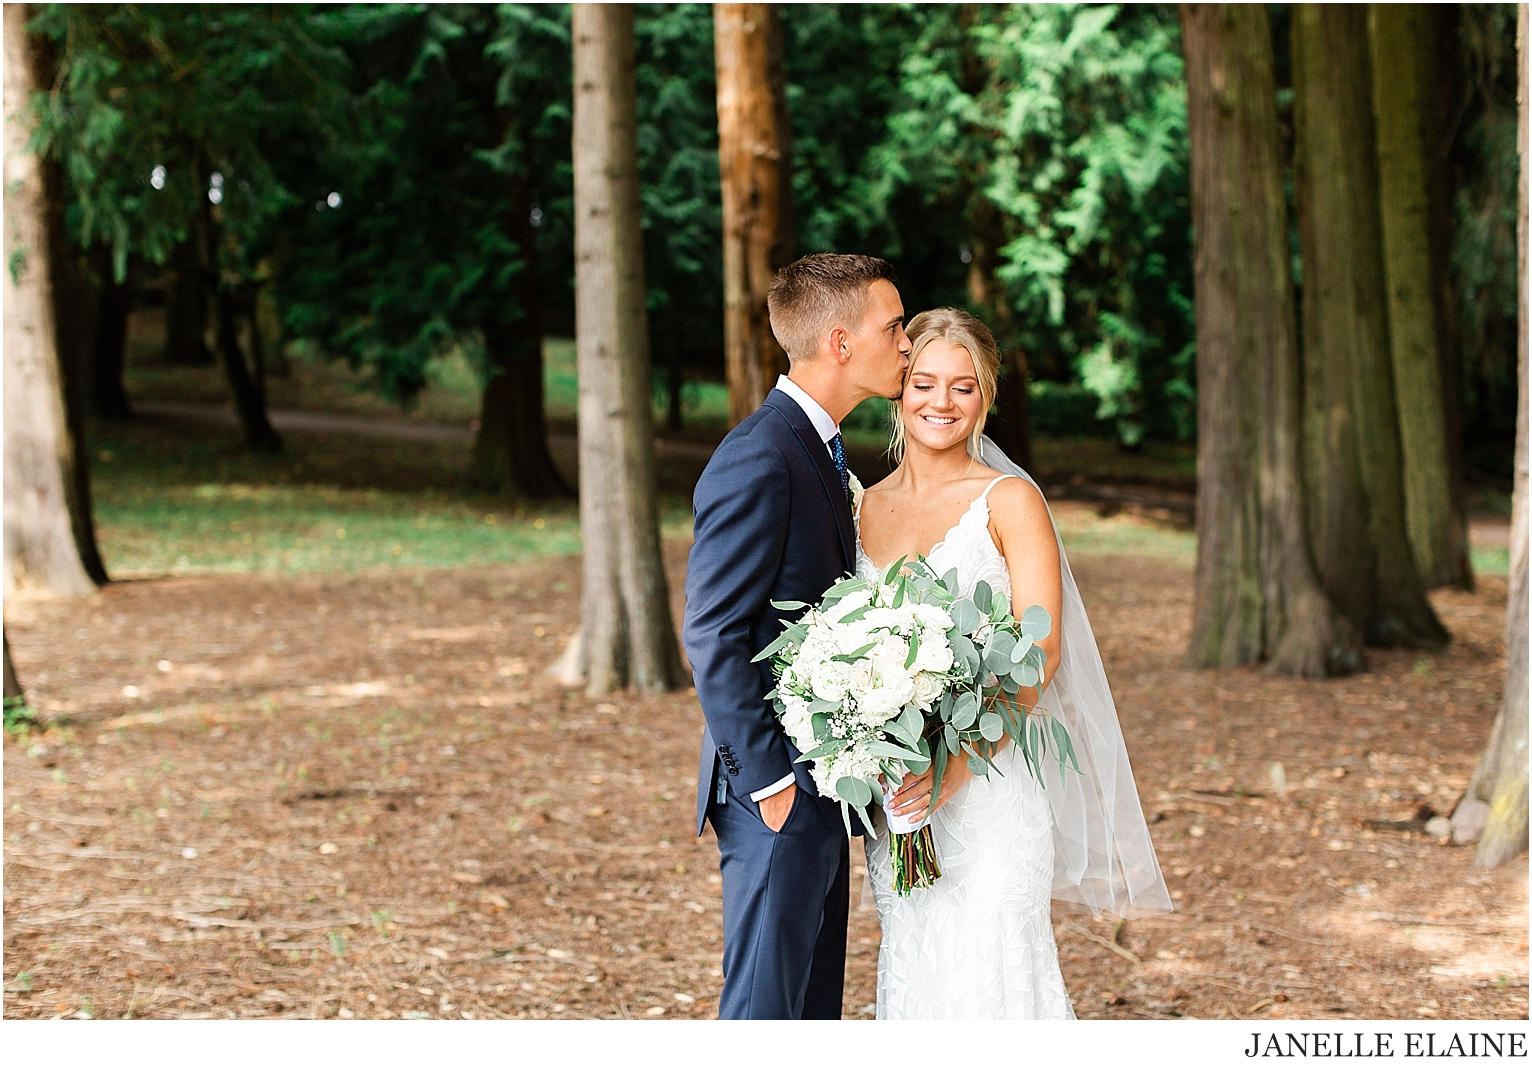 Tricia and Nathan Goddard Wedding-First Look and Portraits-Janelle Elaine Photography-31.jpg